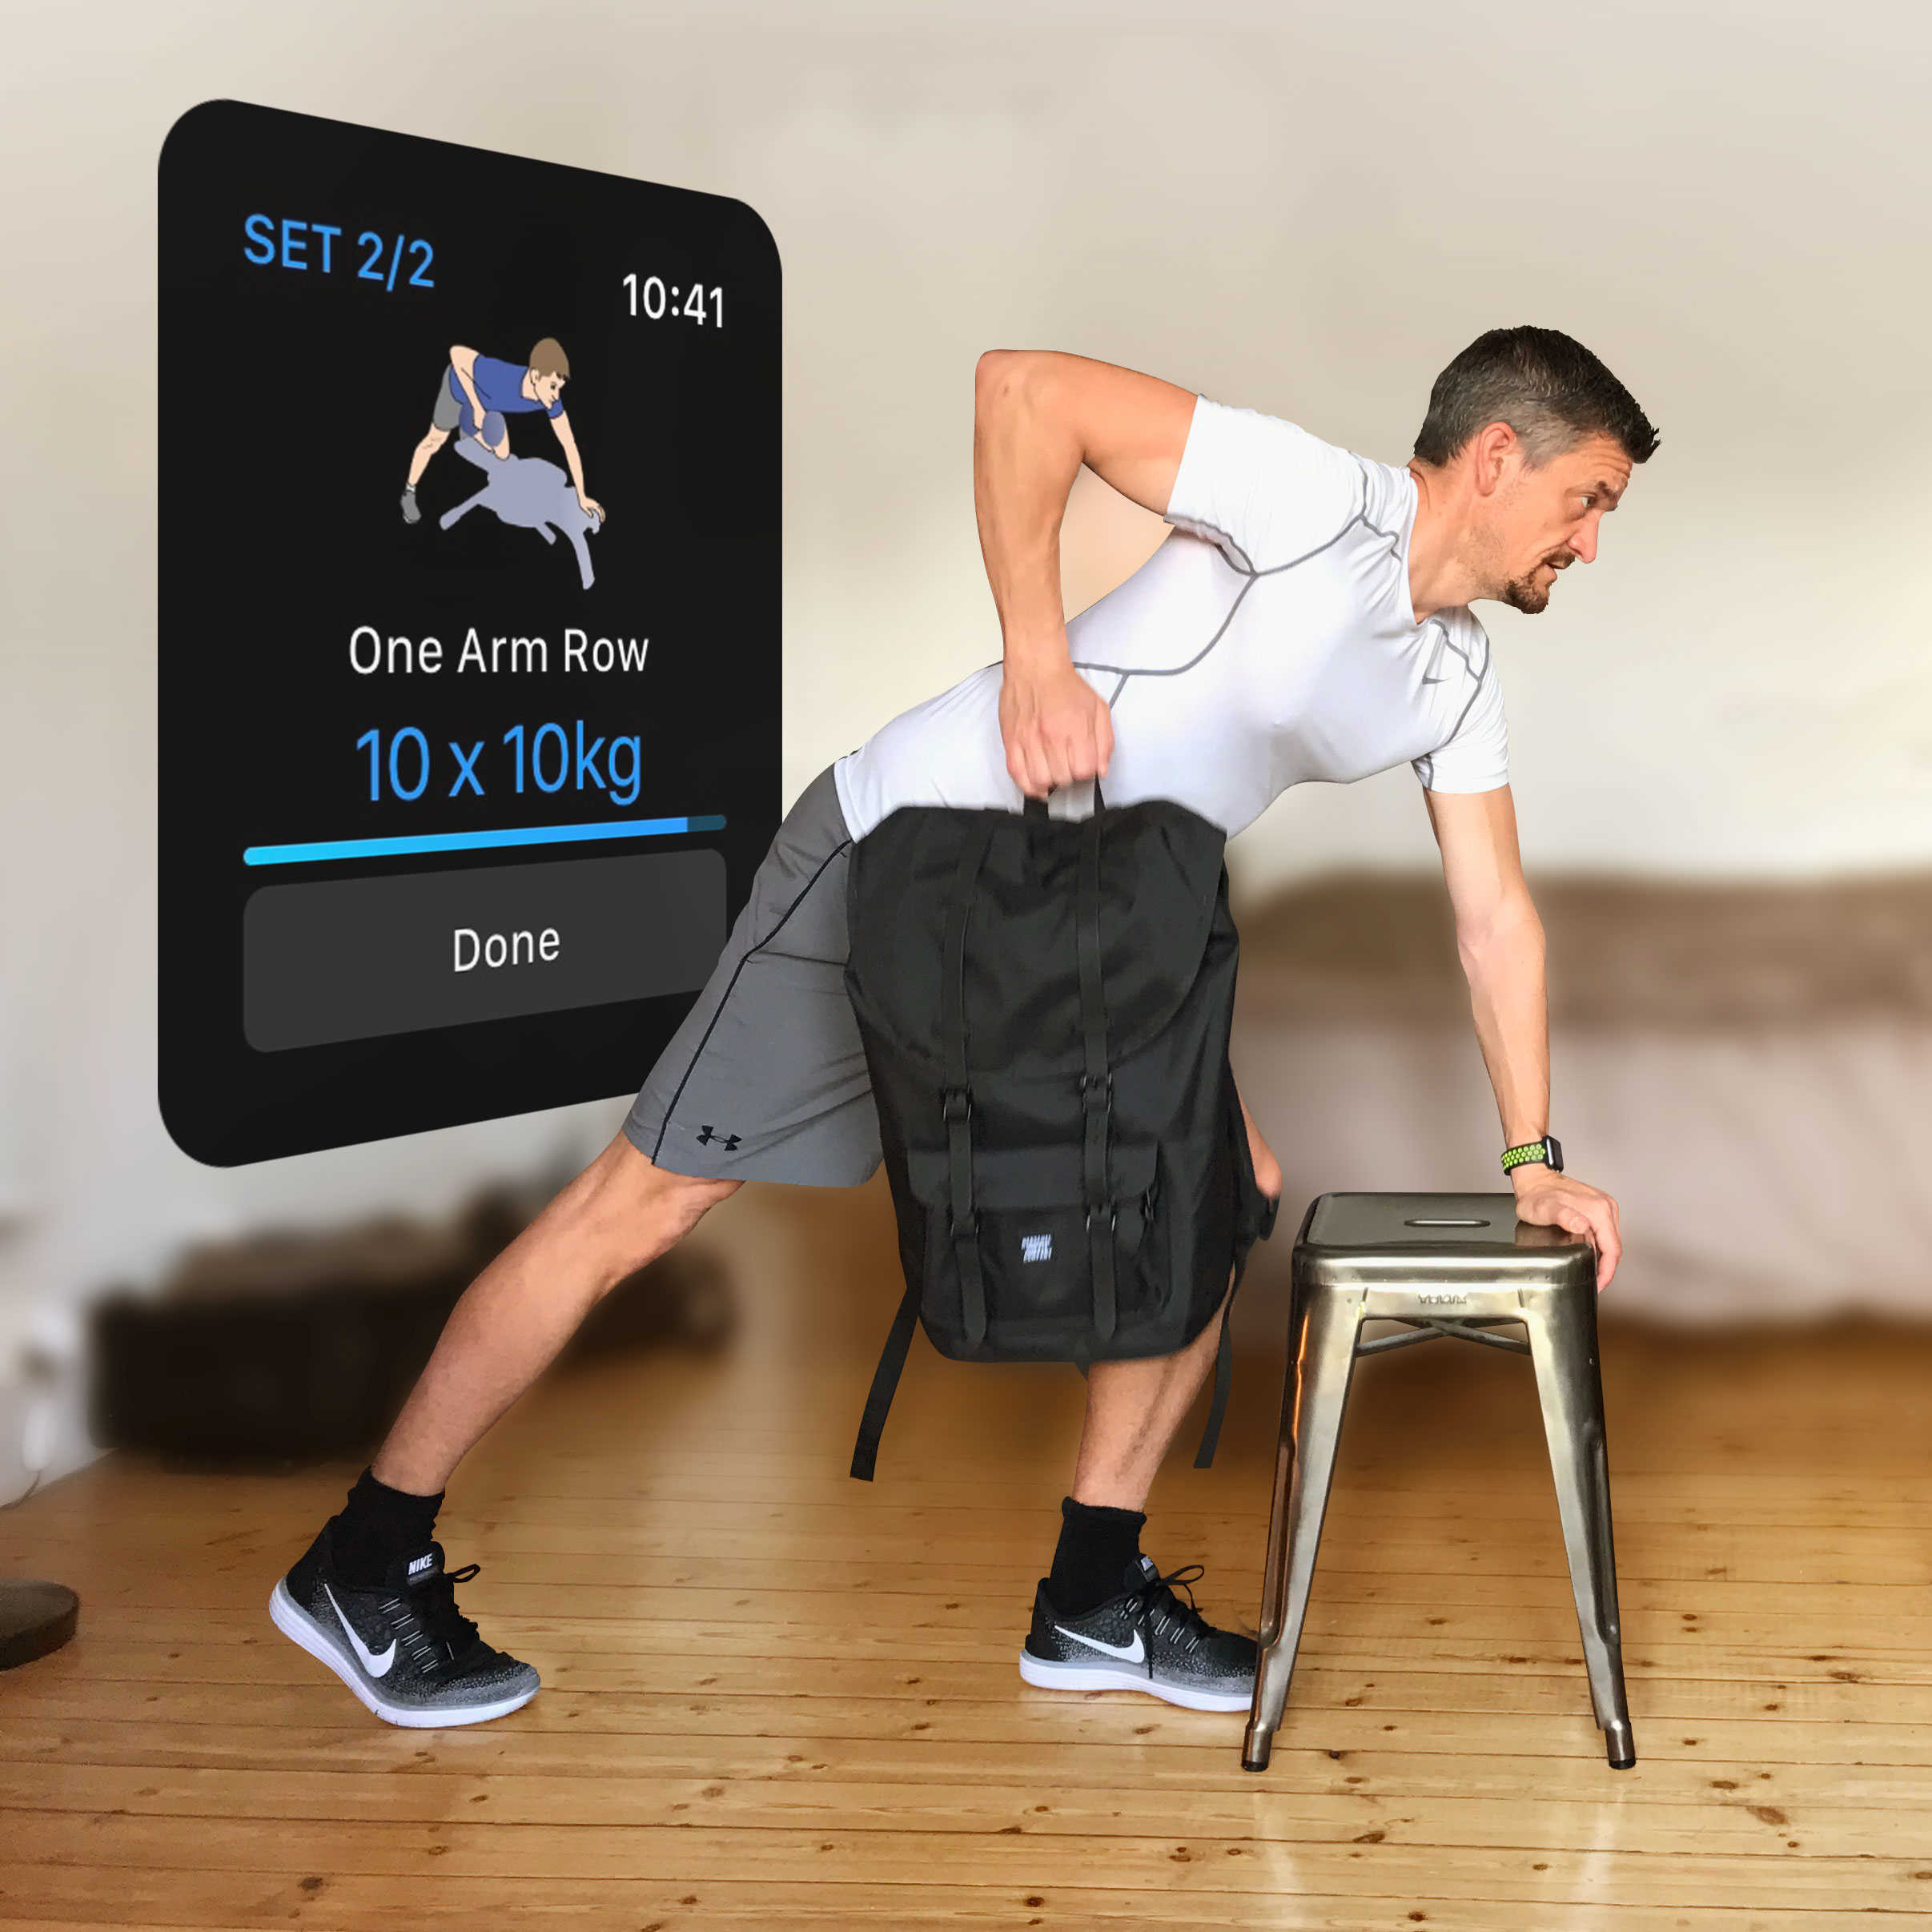 Get fit in the privacy of your own home using everyday objects